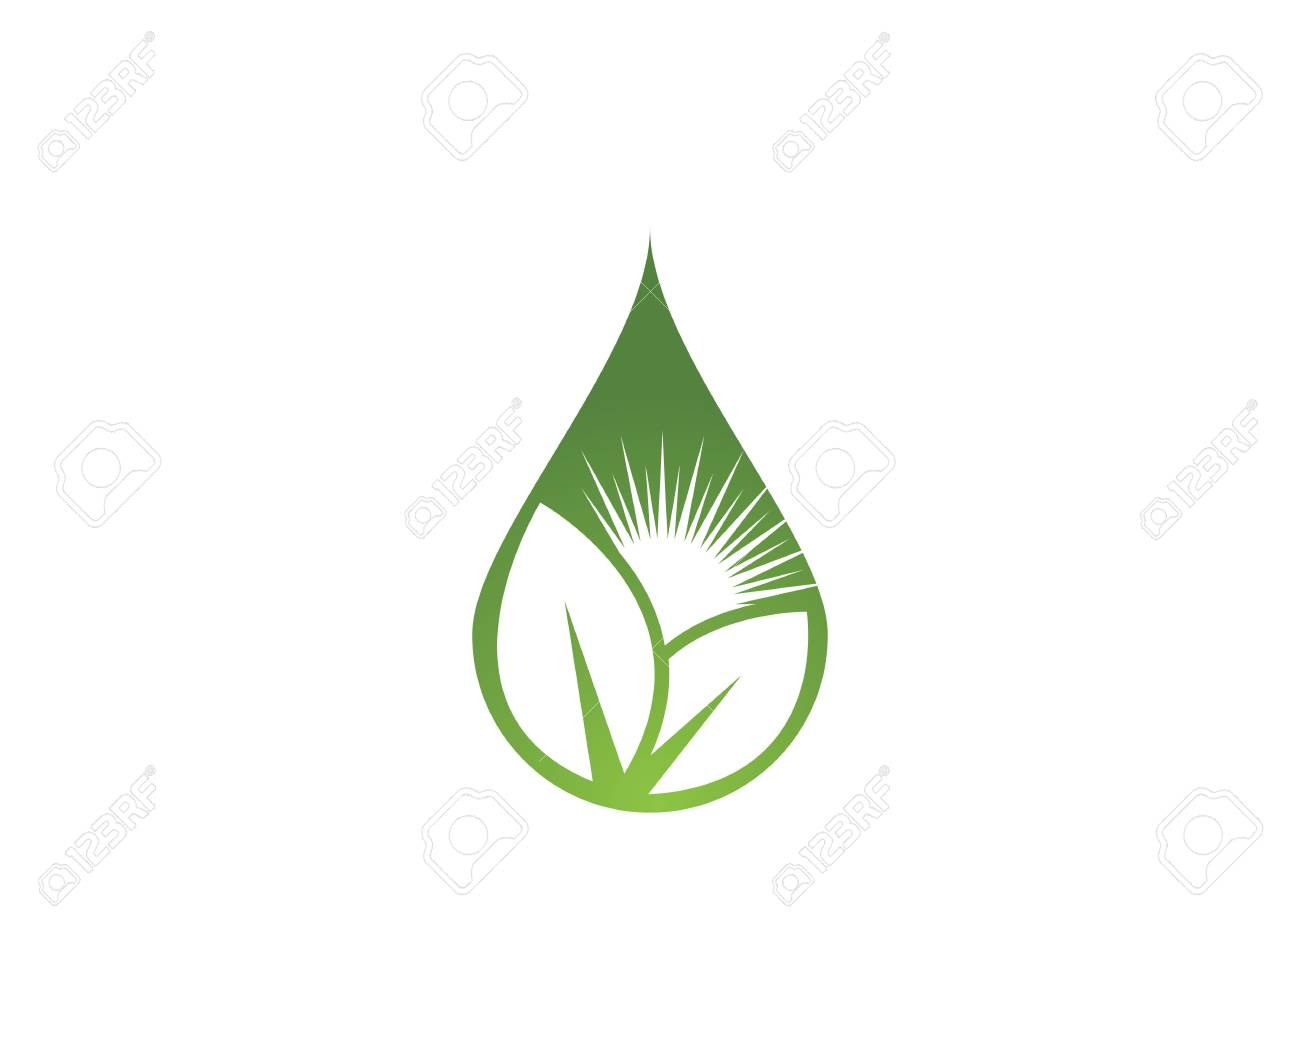 water drop template vector illustration design royalty free cliparts